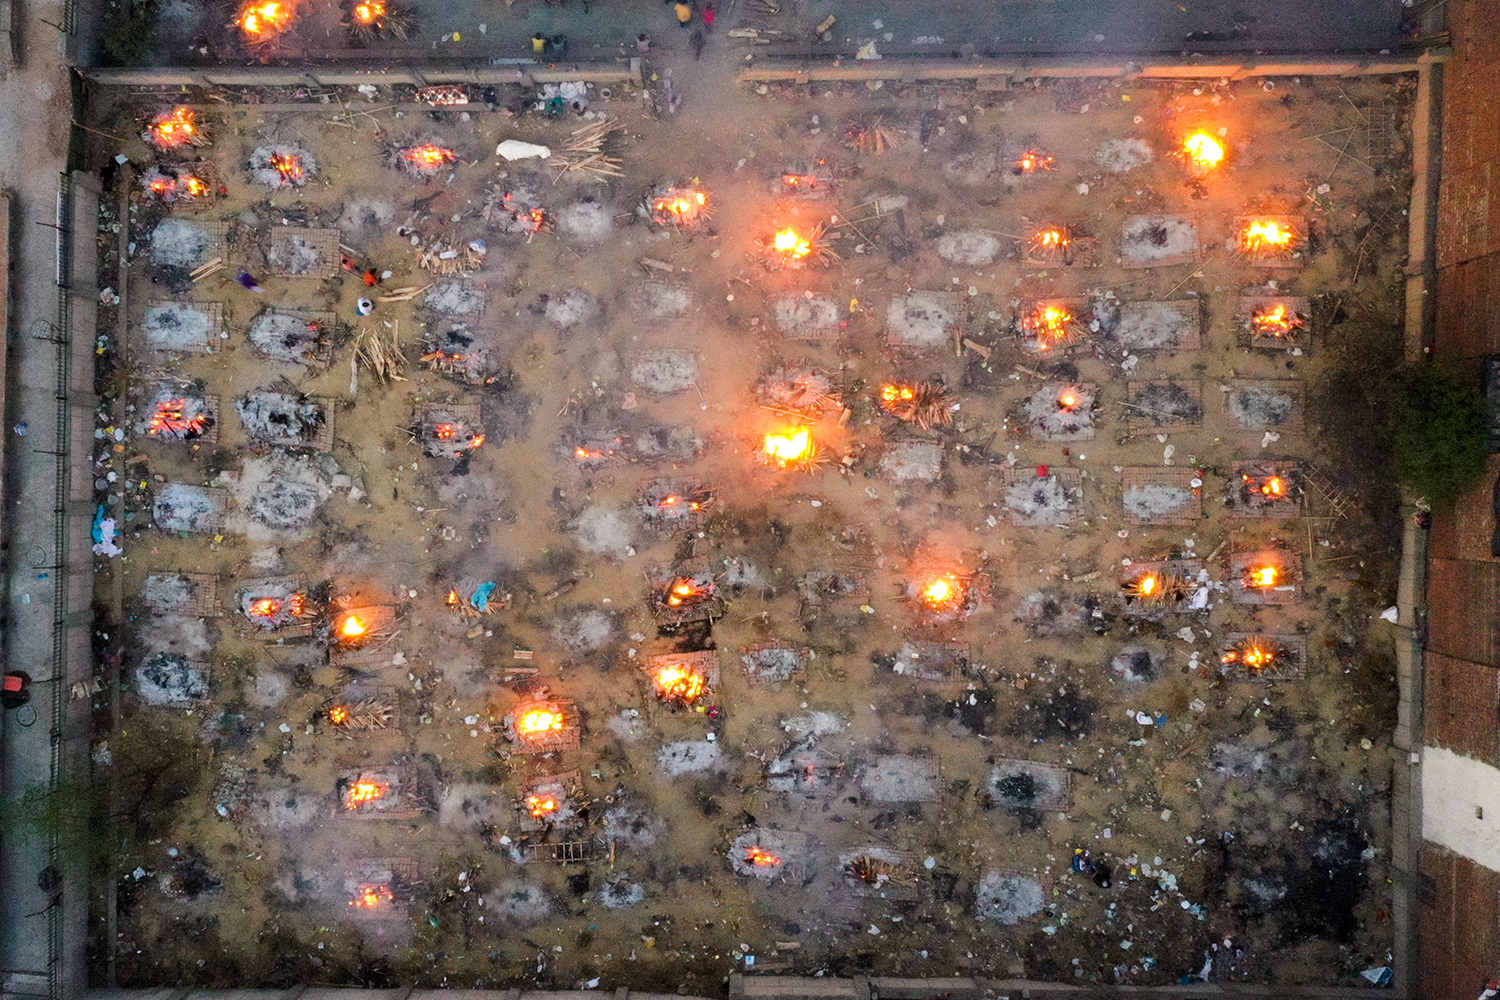 Burning pyres of victims who lost their lives from COVID-19 are seen at a cremation ground in New Delhi on April 26. JEWEL SAMAD/AFP via Getty Images